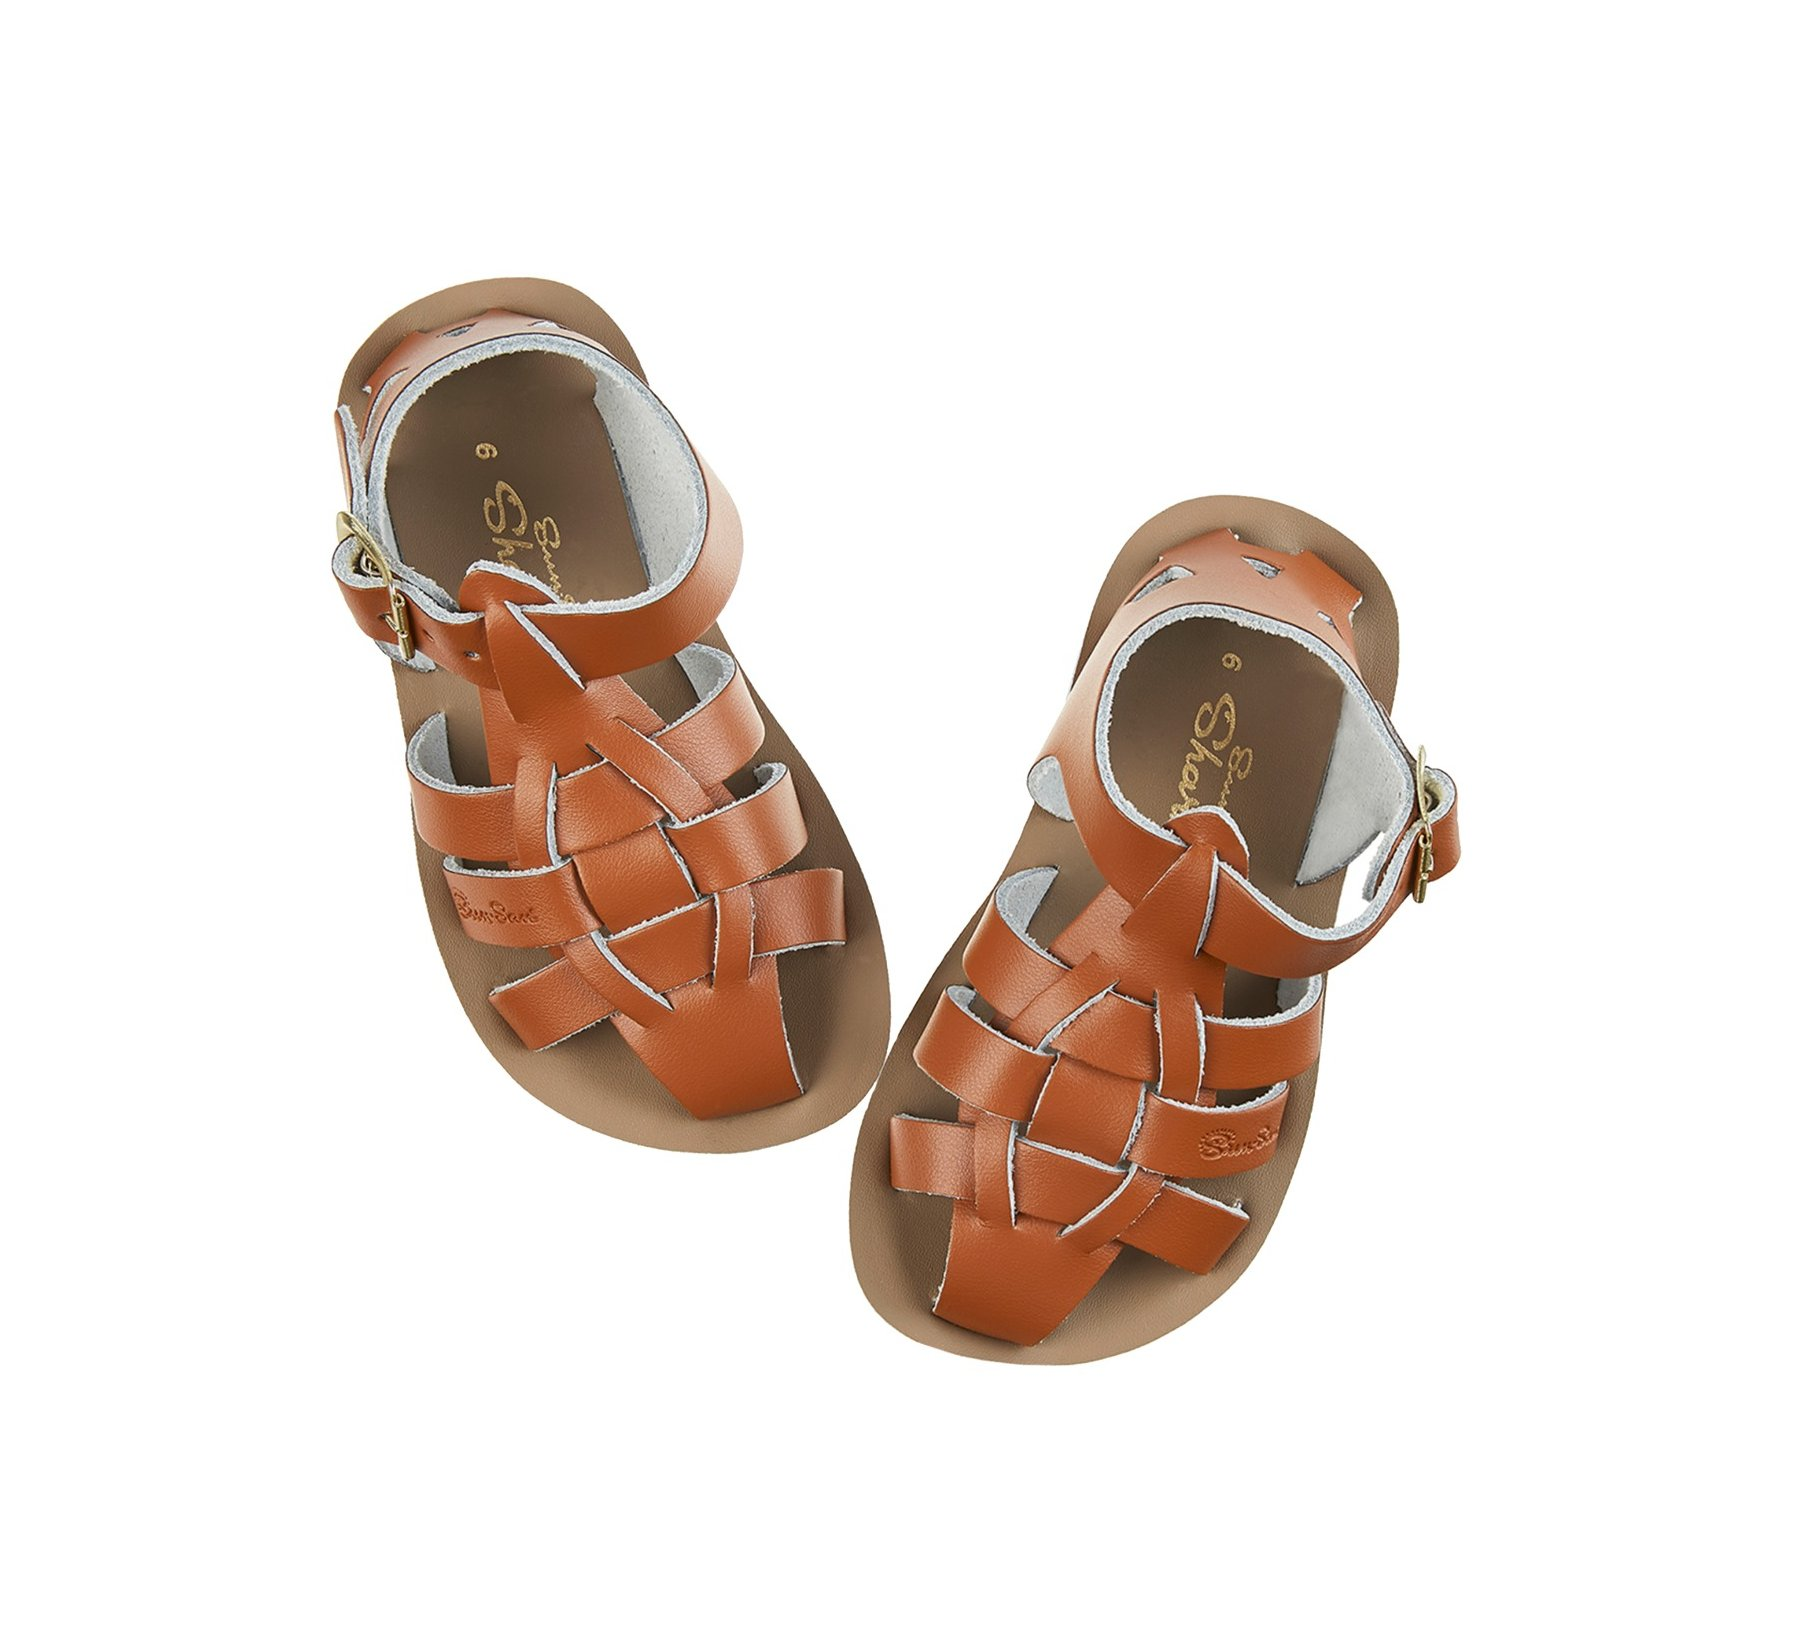 Shark Tan - Salt Water Sandals